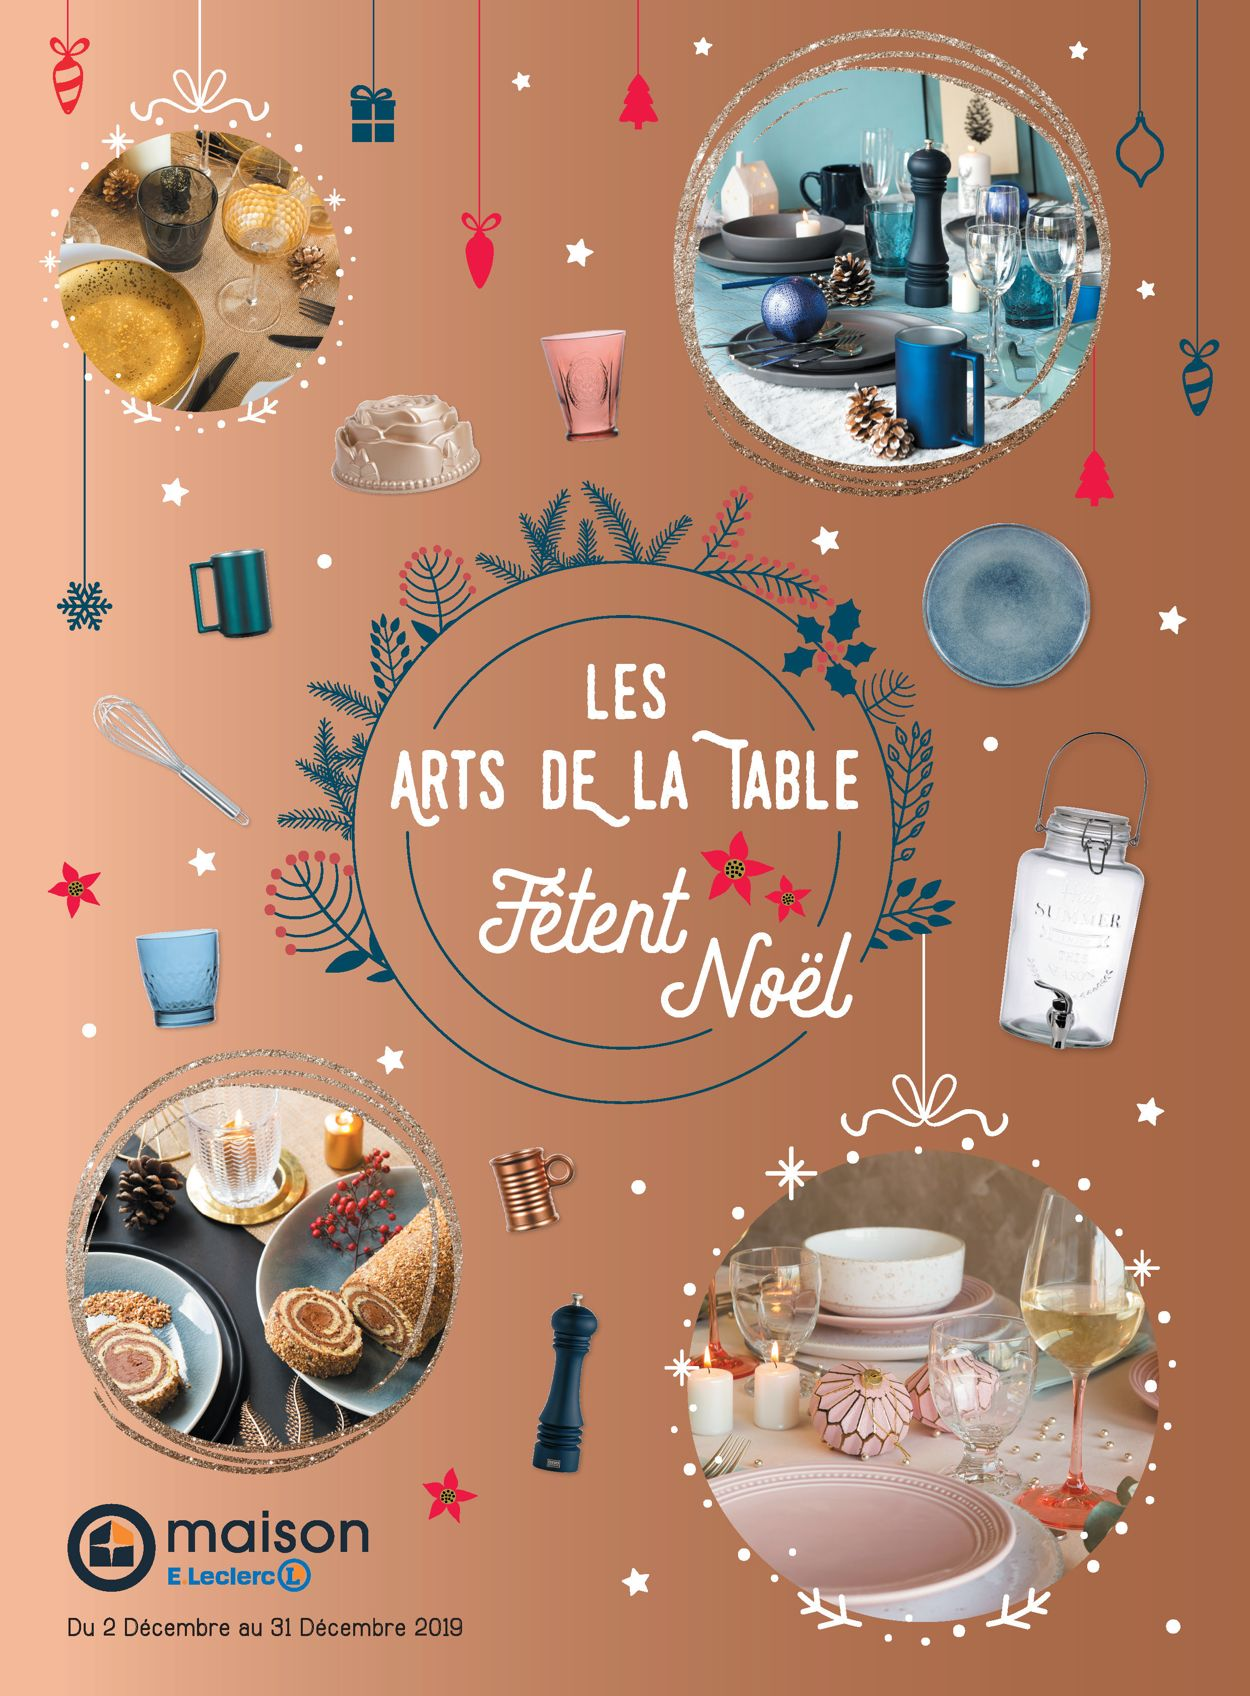 E.leclerc catalogue de Noël 2019 Catalogue - 02.12-31.12.2019